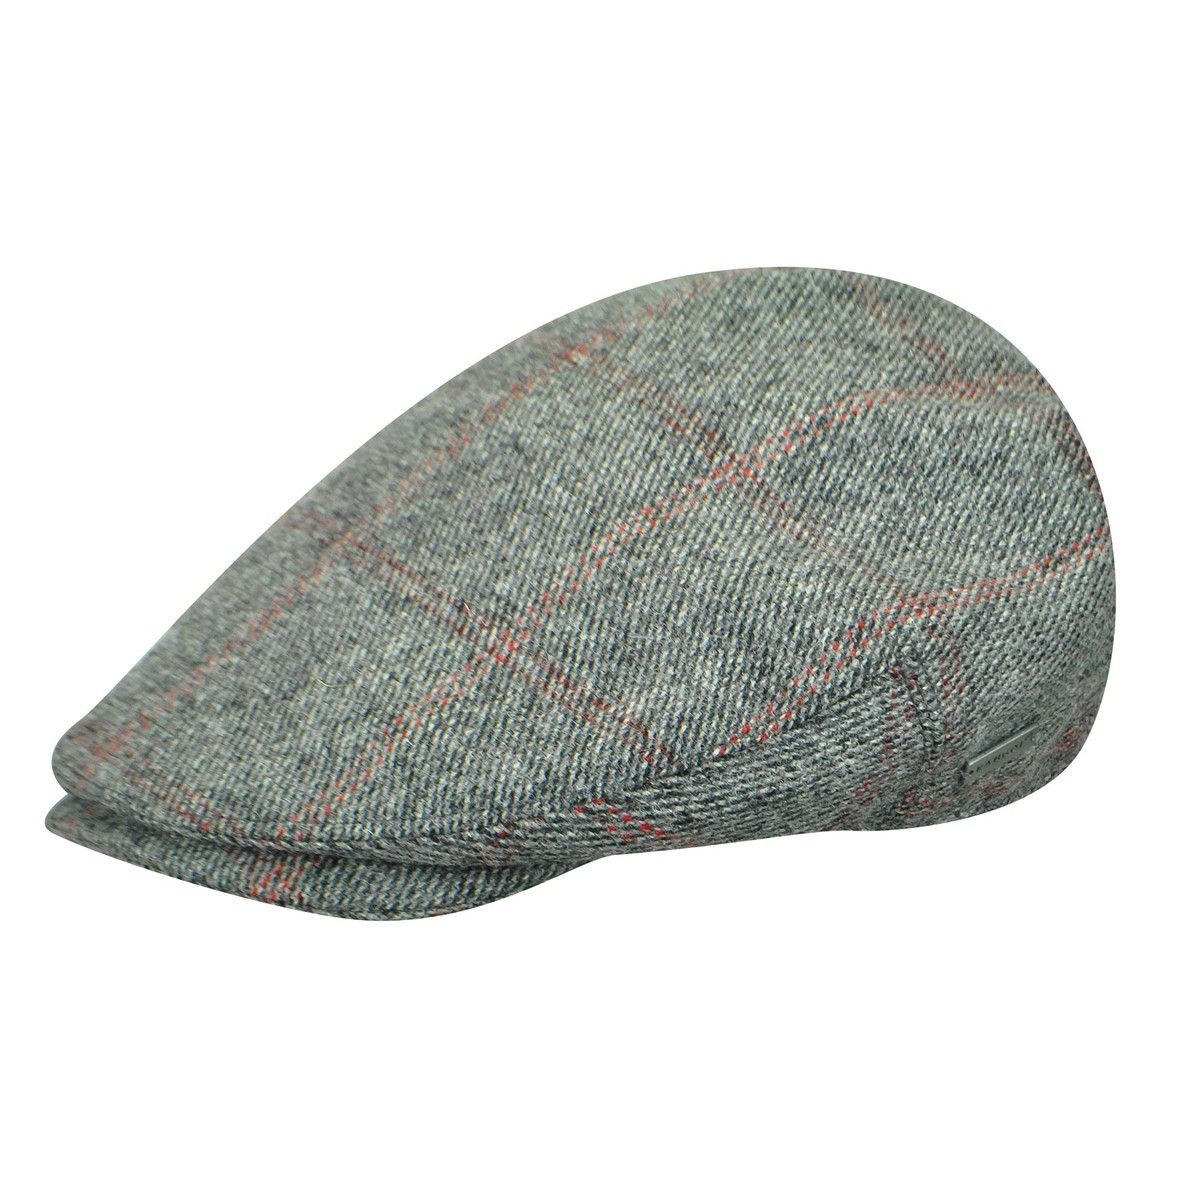 Kangol カンゴール British Peebles Devon Check Ivy Caps & Flat Caps 帽子 Devon Check